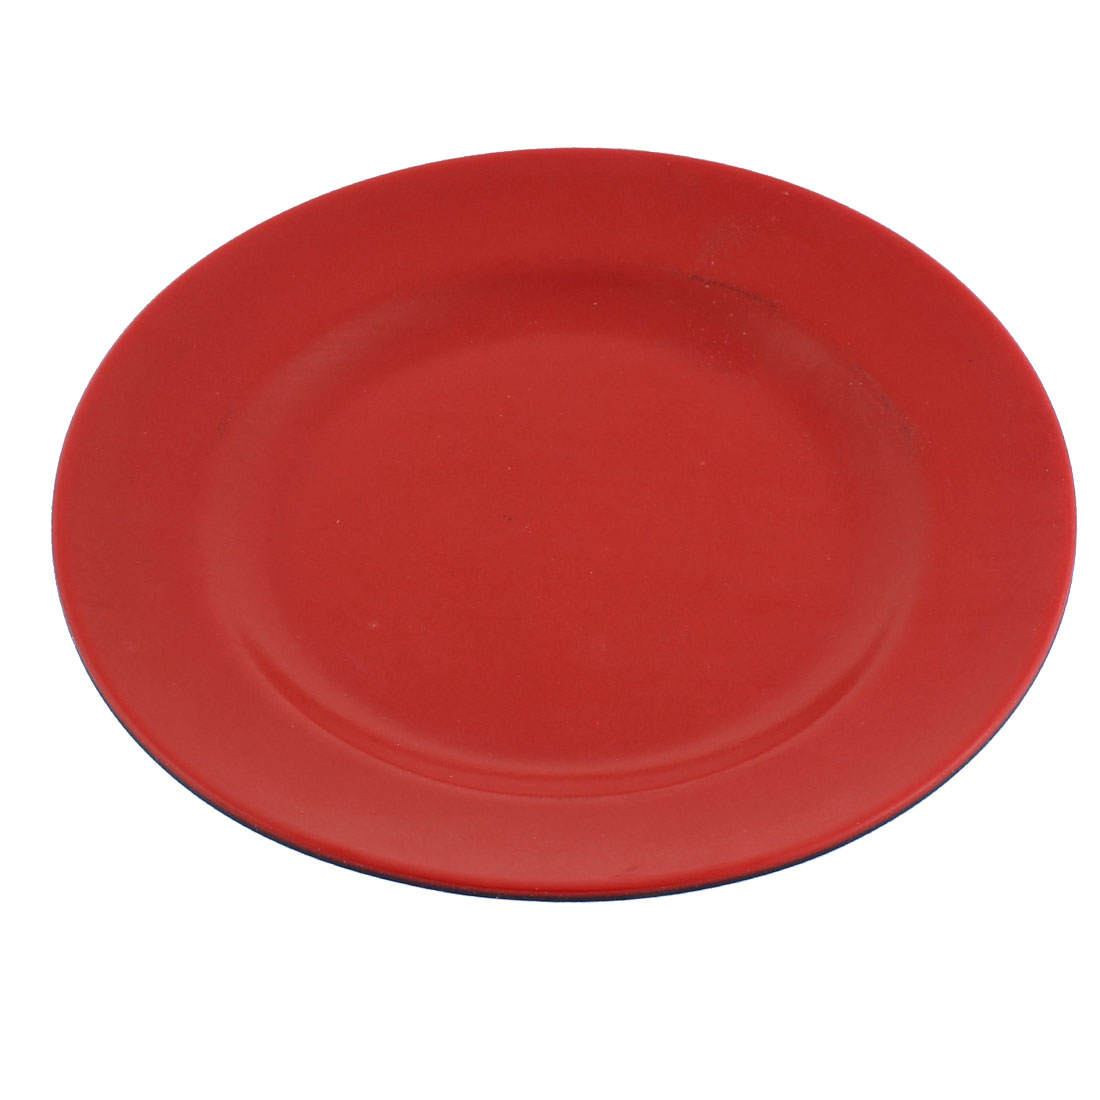 "Restaurant Hot Pot Plastic Food Snacks Dish Plate Tableware Red Black 7"" Dia"